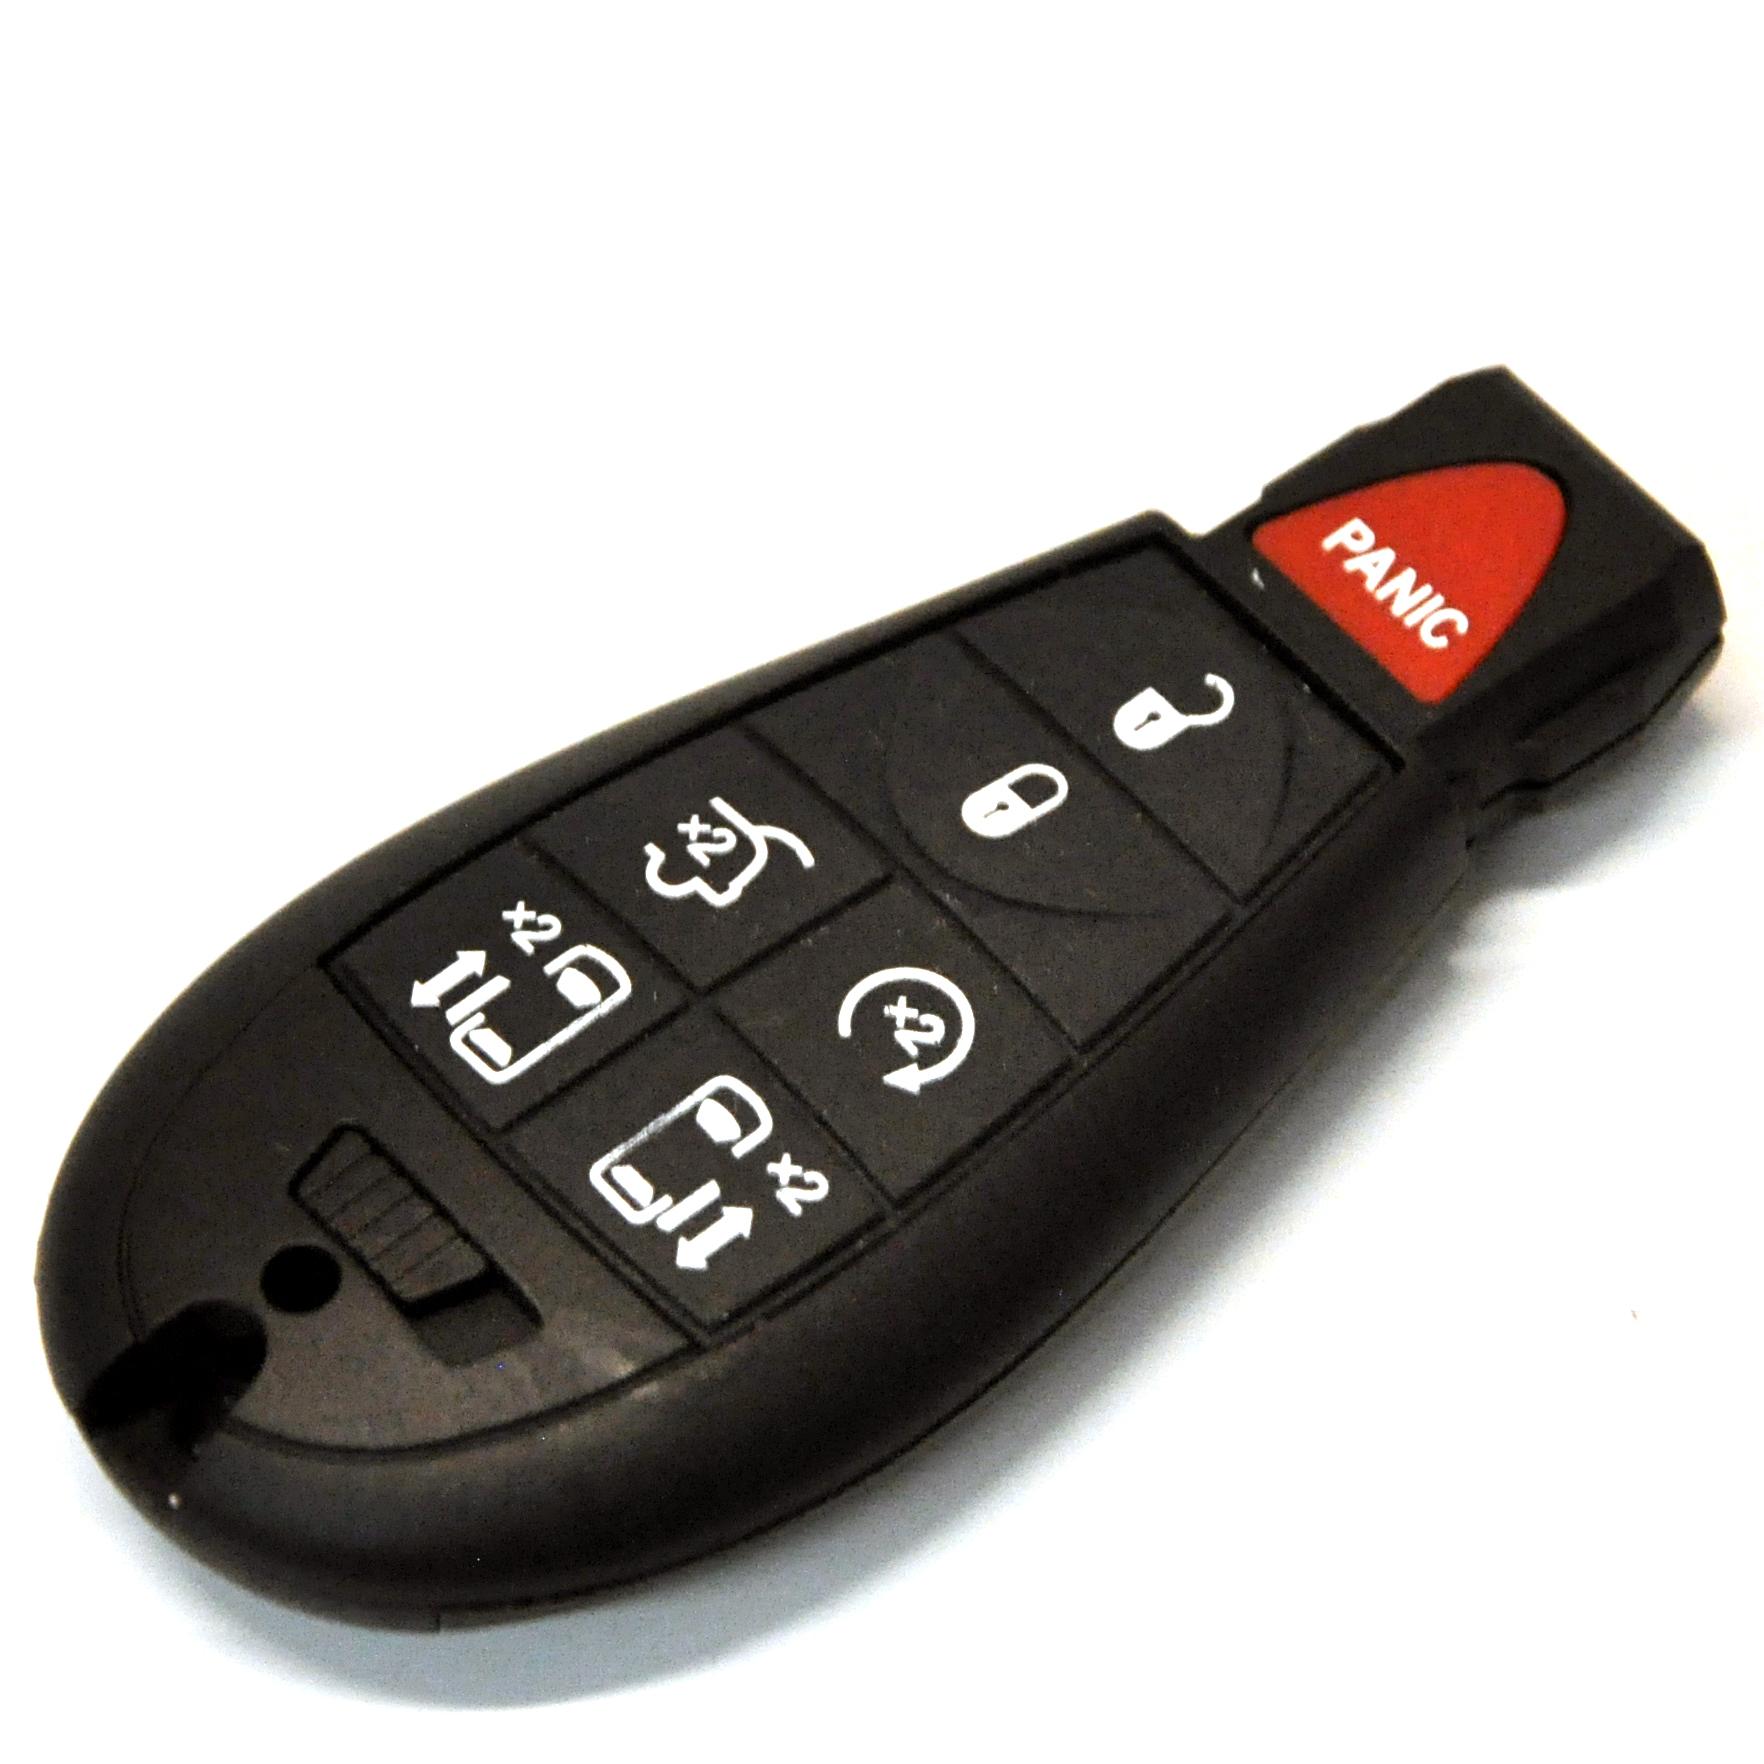 Dodge Car Key Issue Call Chicago Car Keys For Fast 24 Hr Service